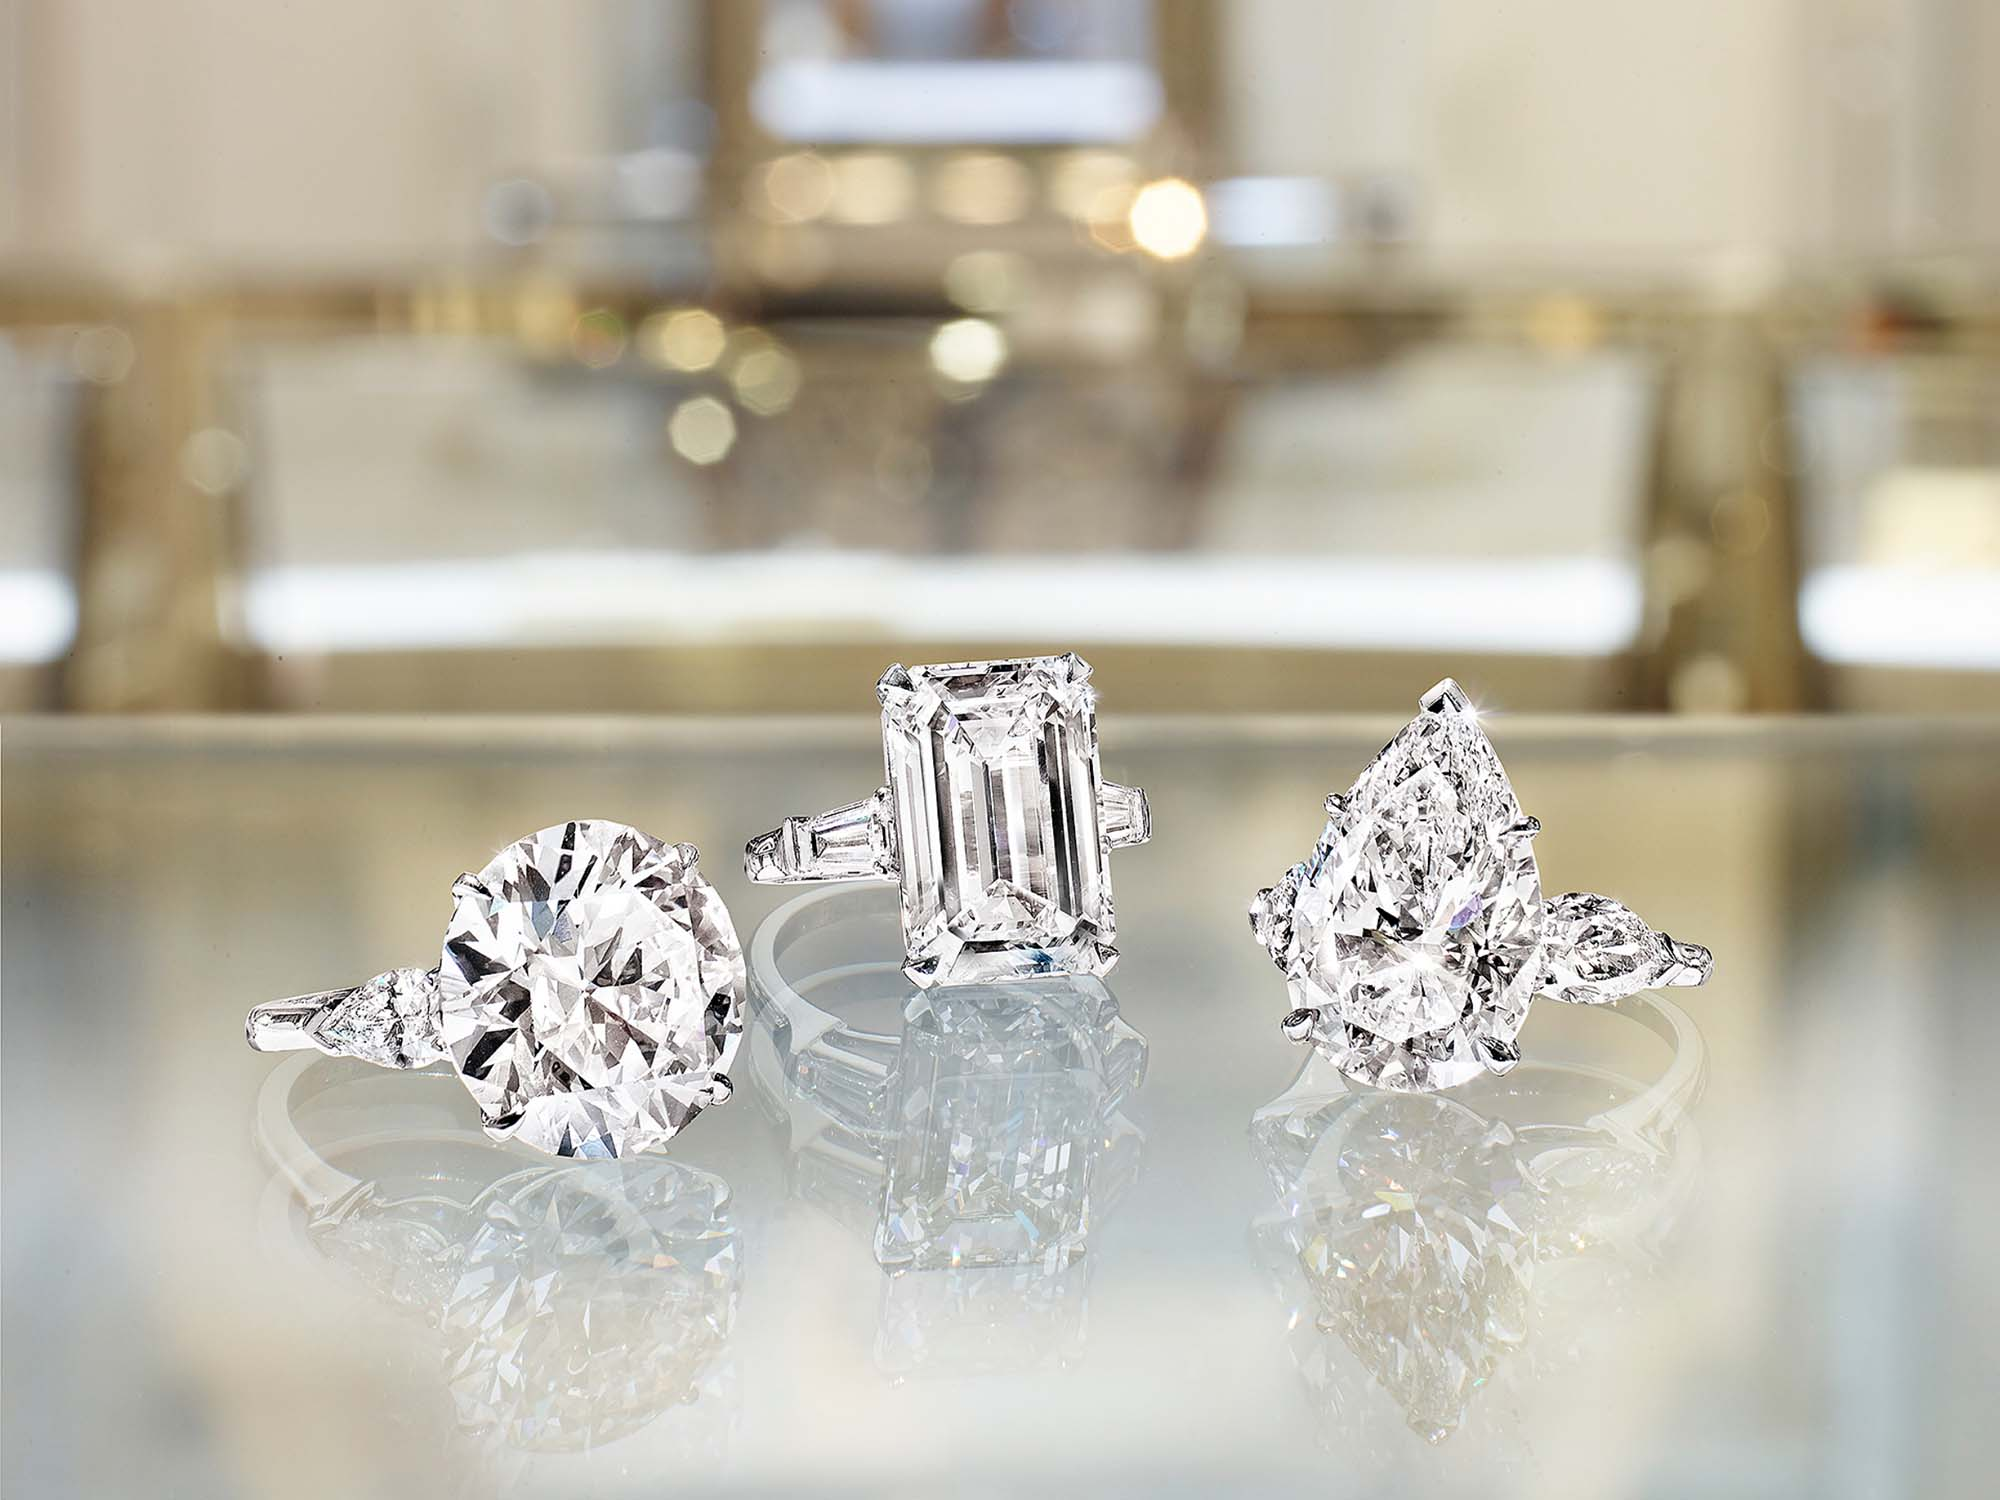 Three Graff Promise Engagement rings set with round diamond, pear Shape Diamond and Emerald Cut Diamond.